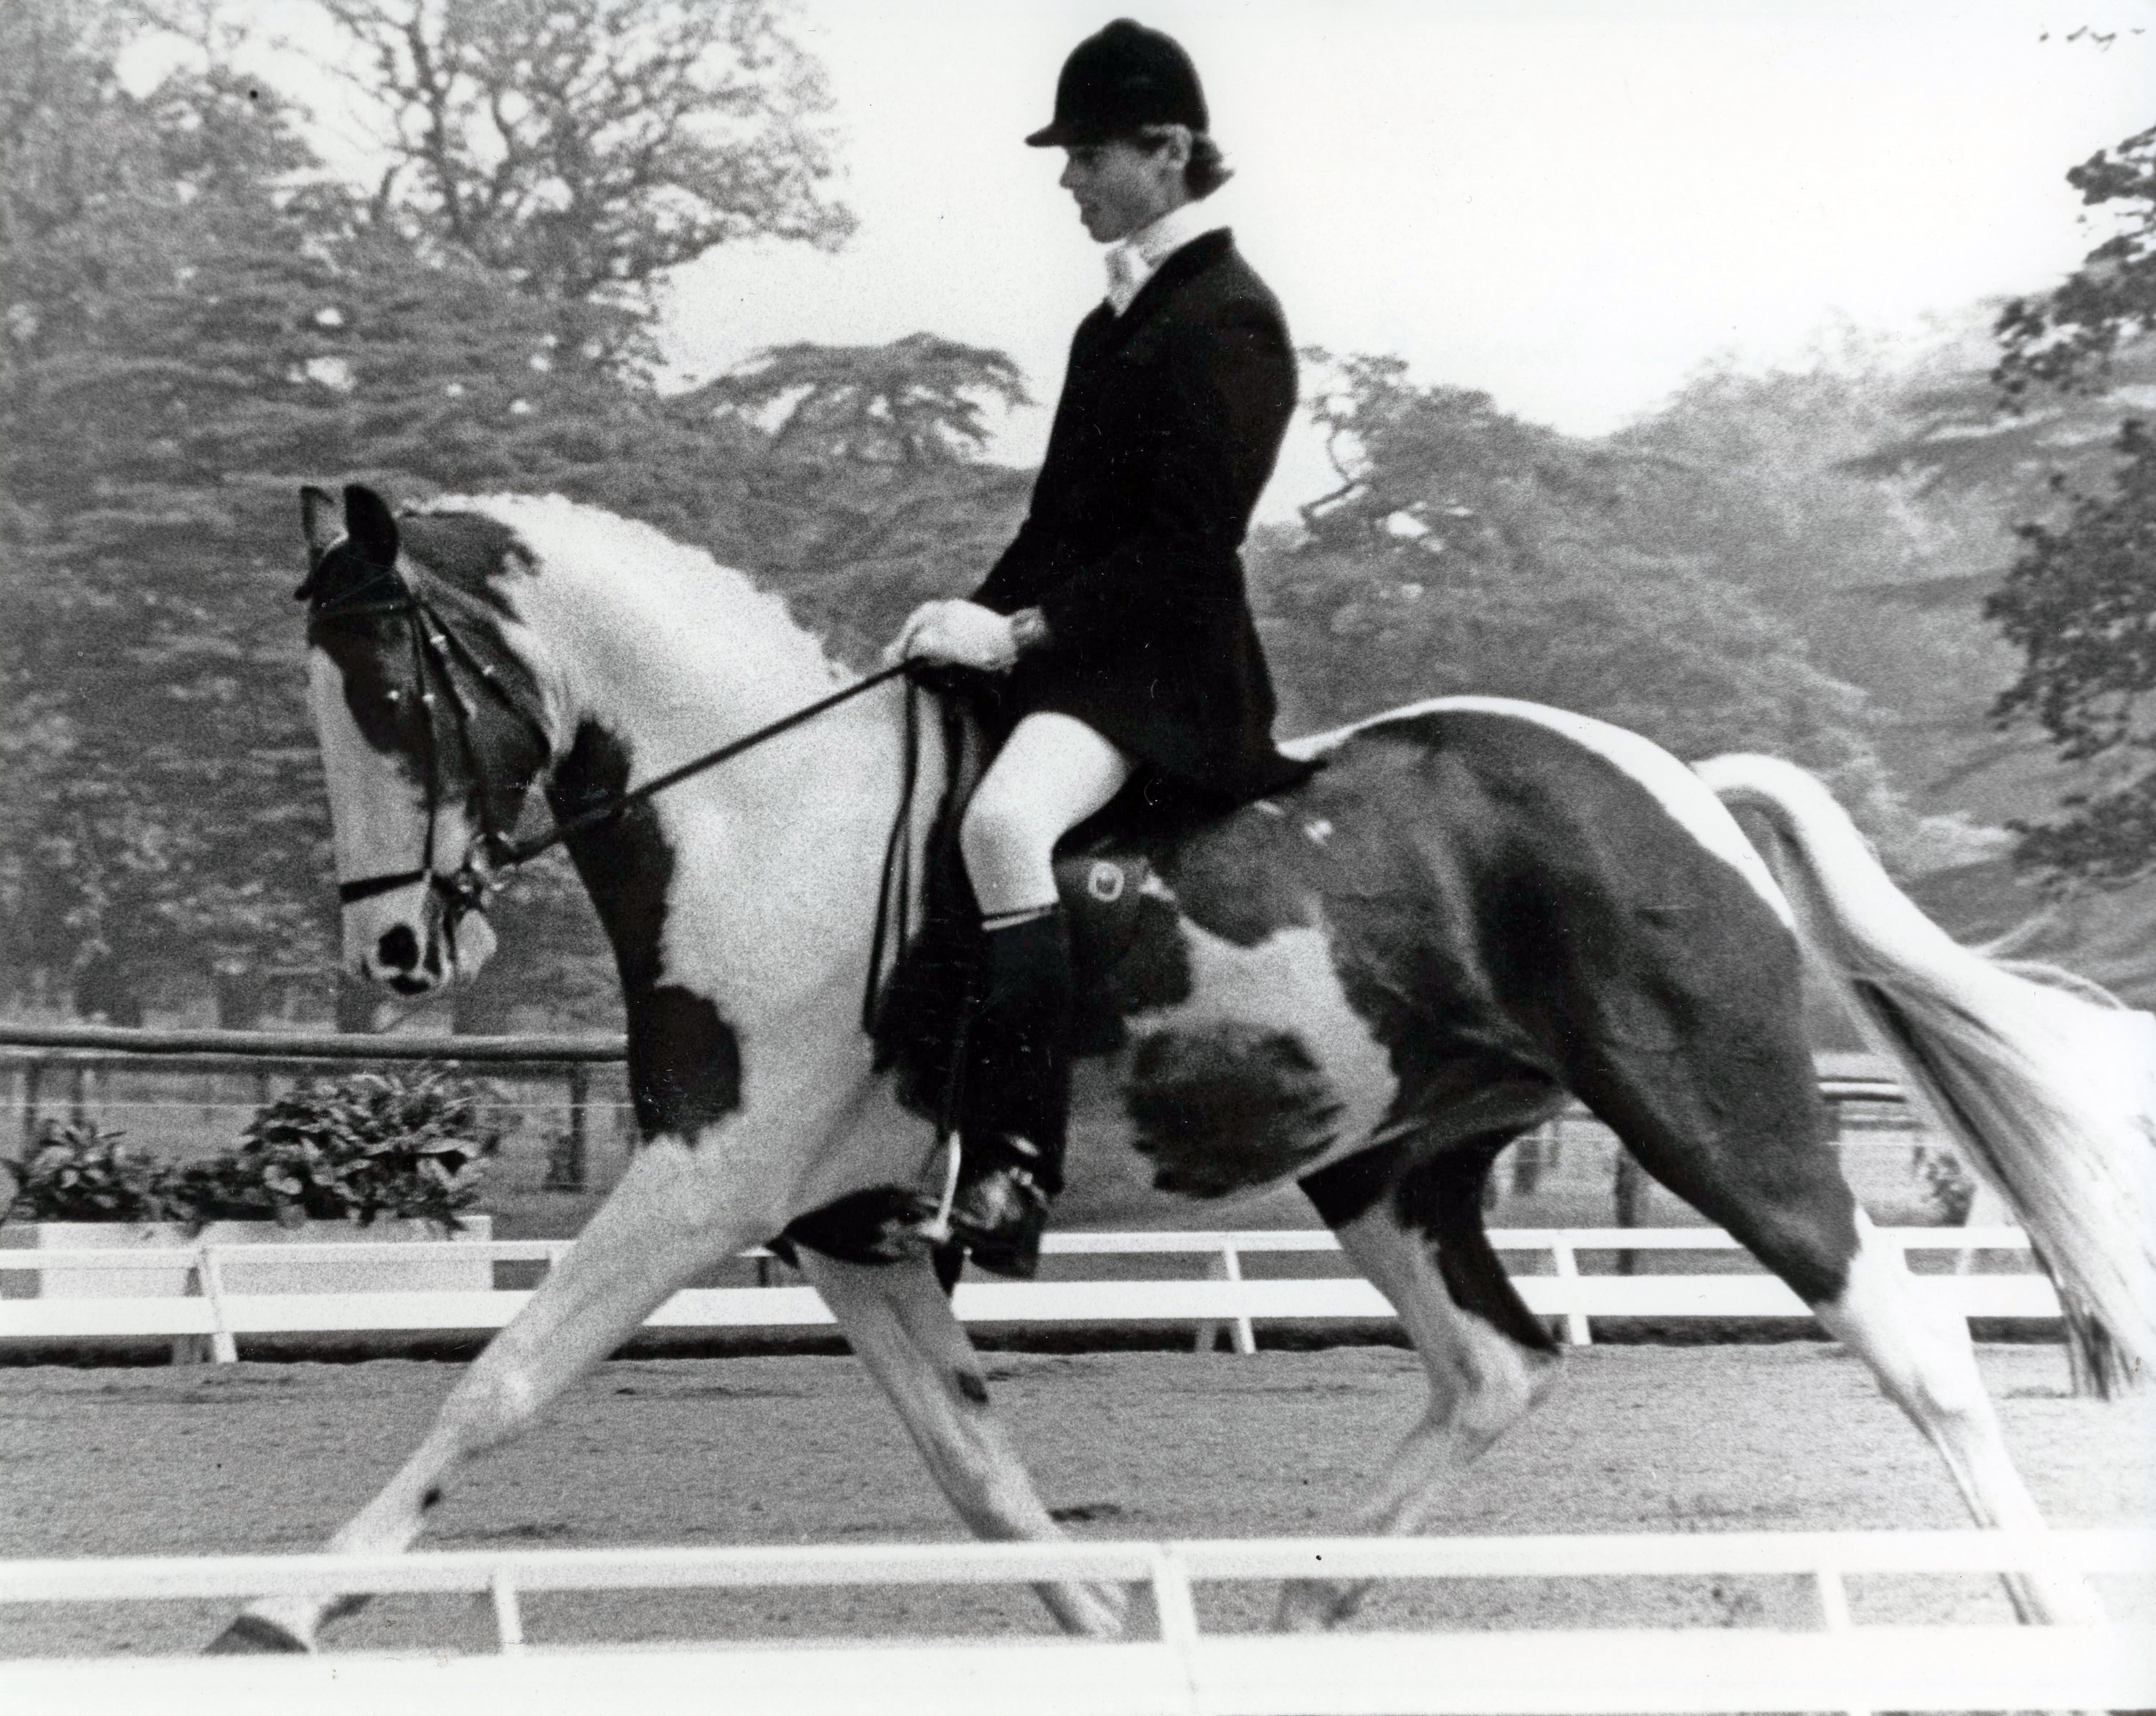 FROM THE ARCHIVES: CARL HESTER